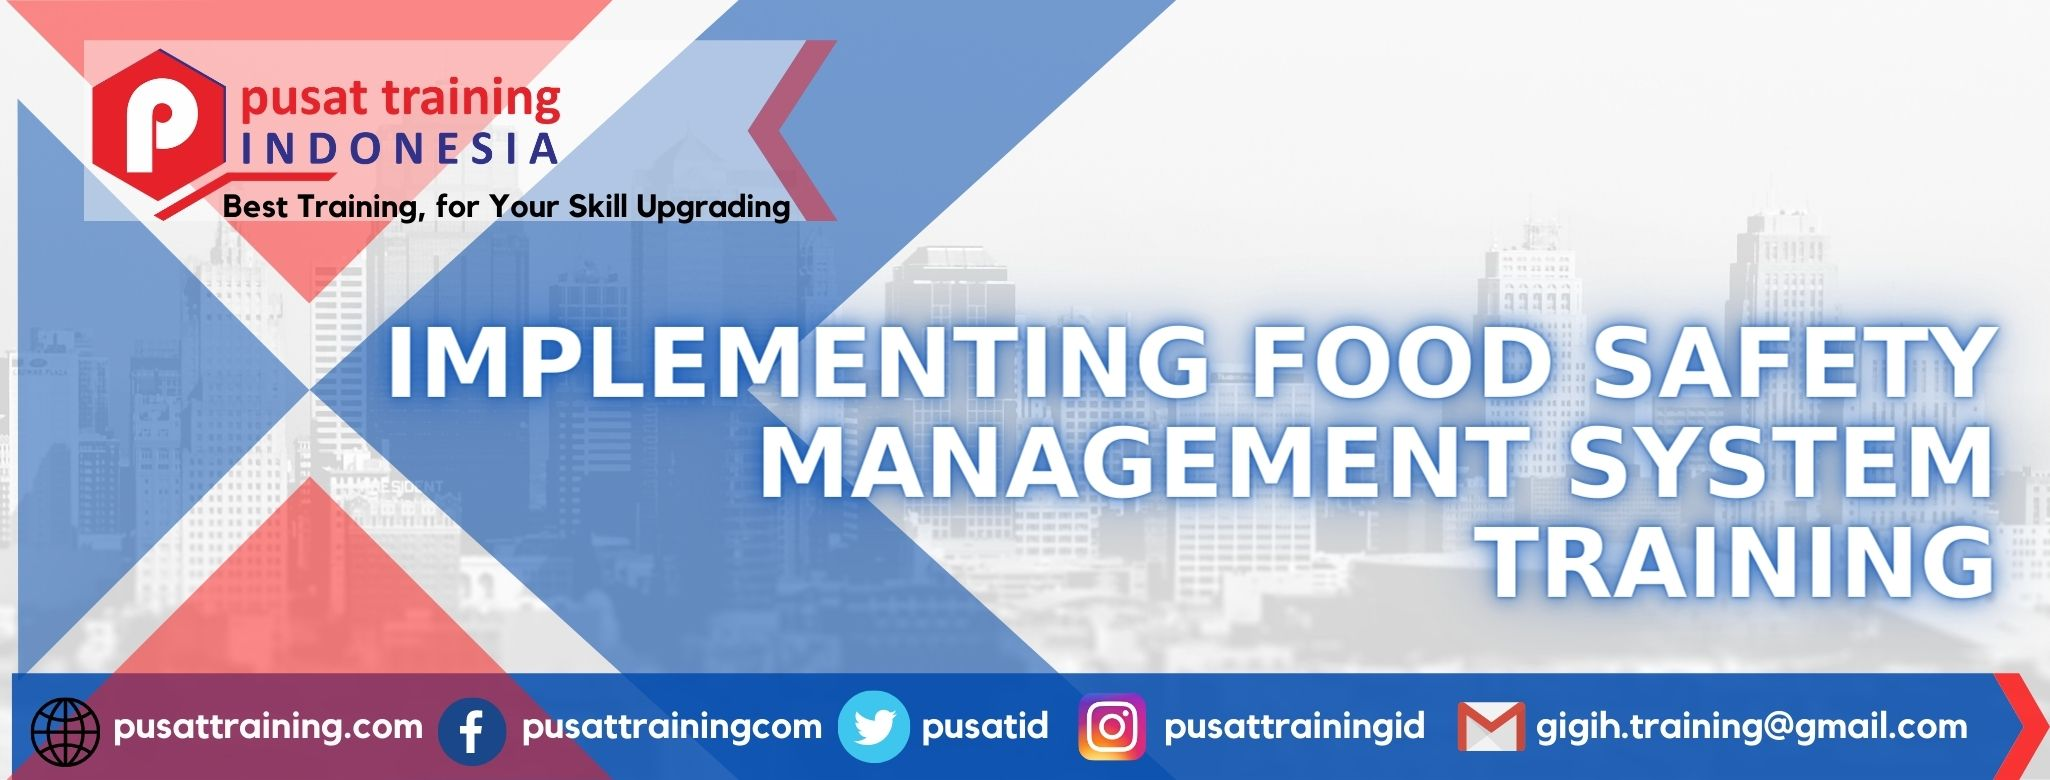 implementing-food-safety-management-system-training